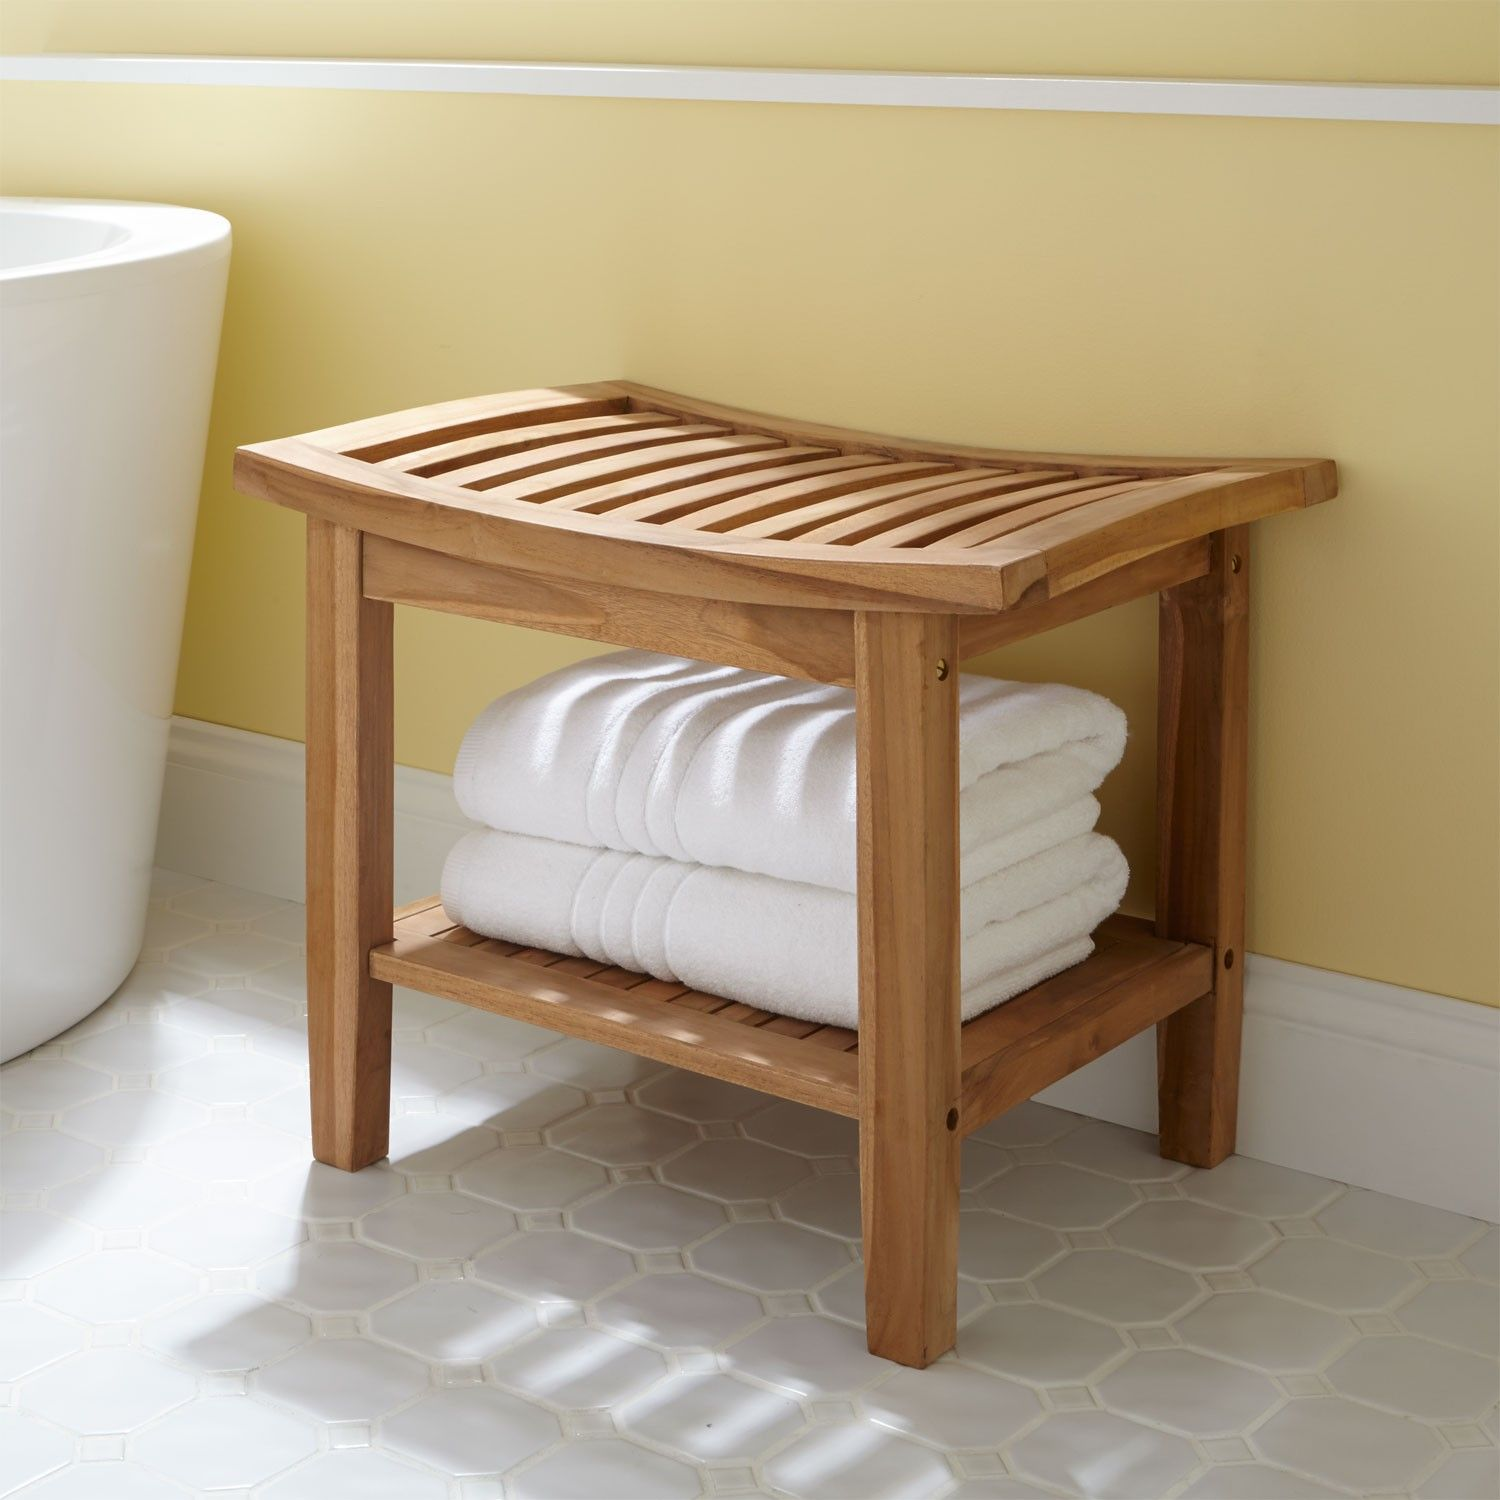 stool teak stools shower tandea bathroom